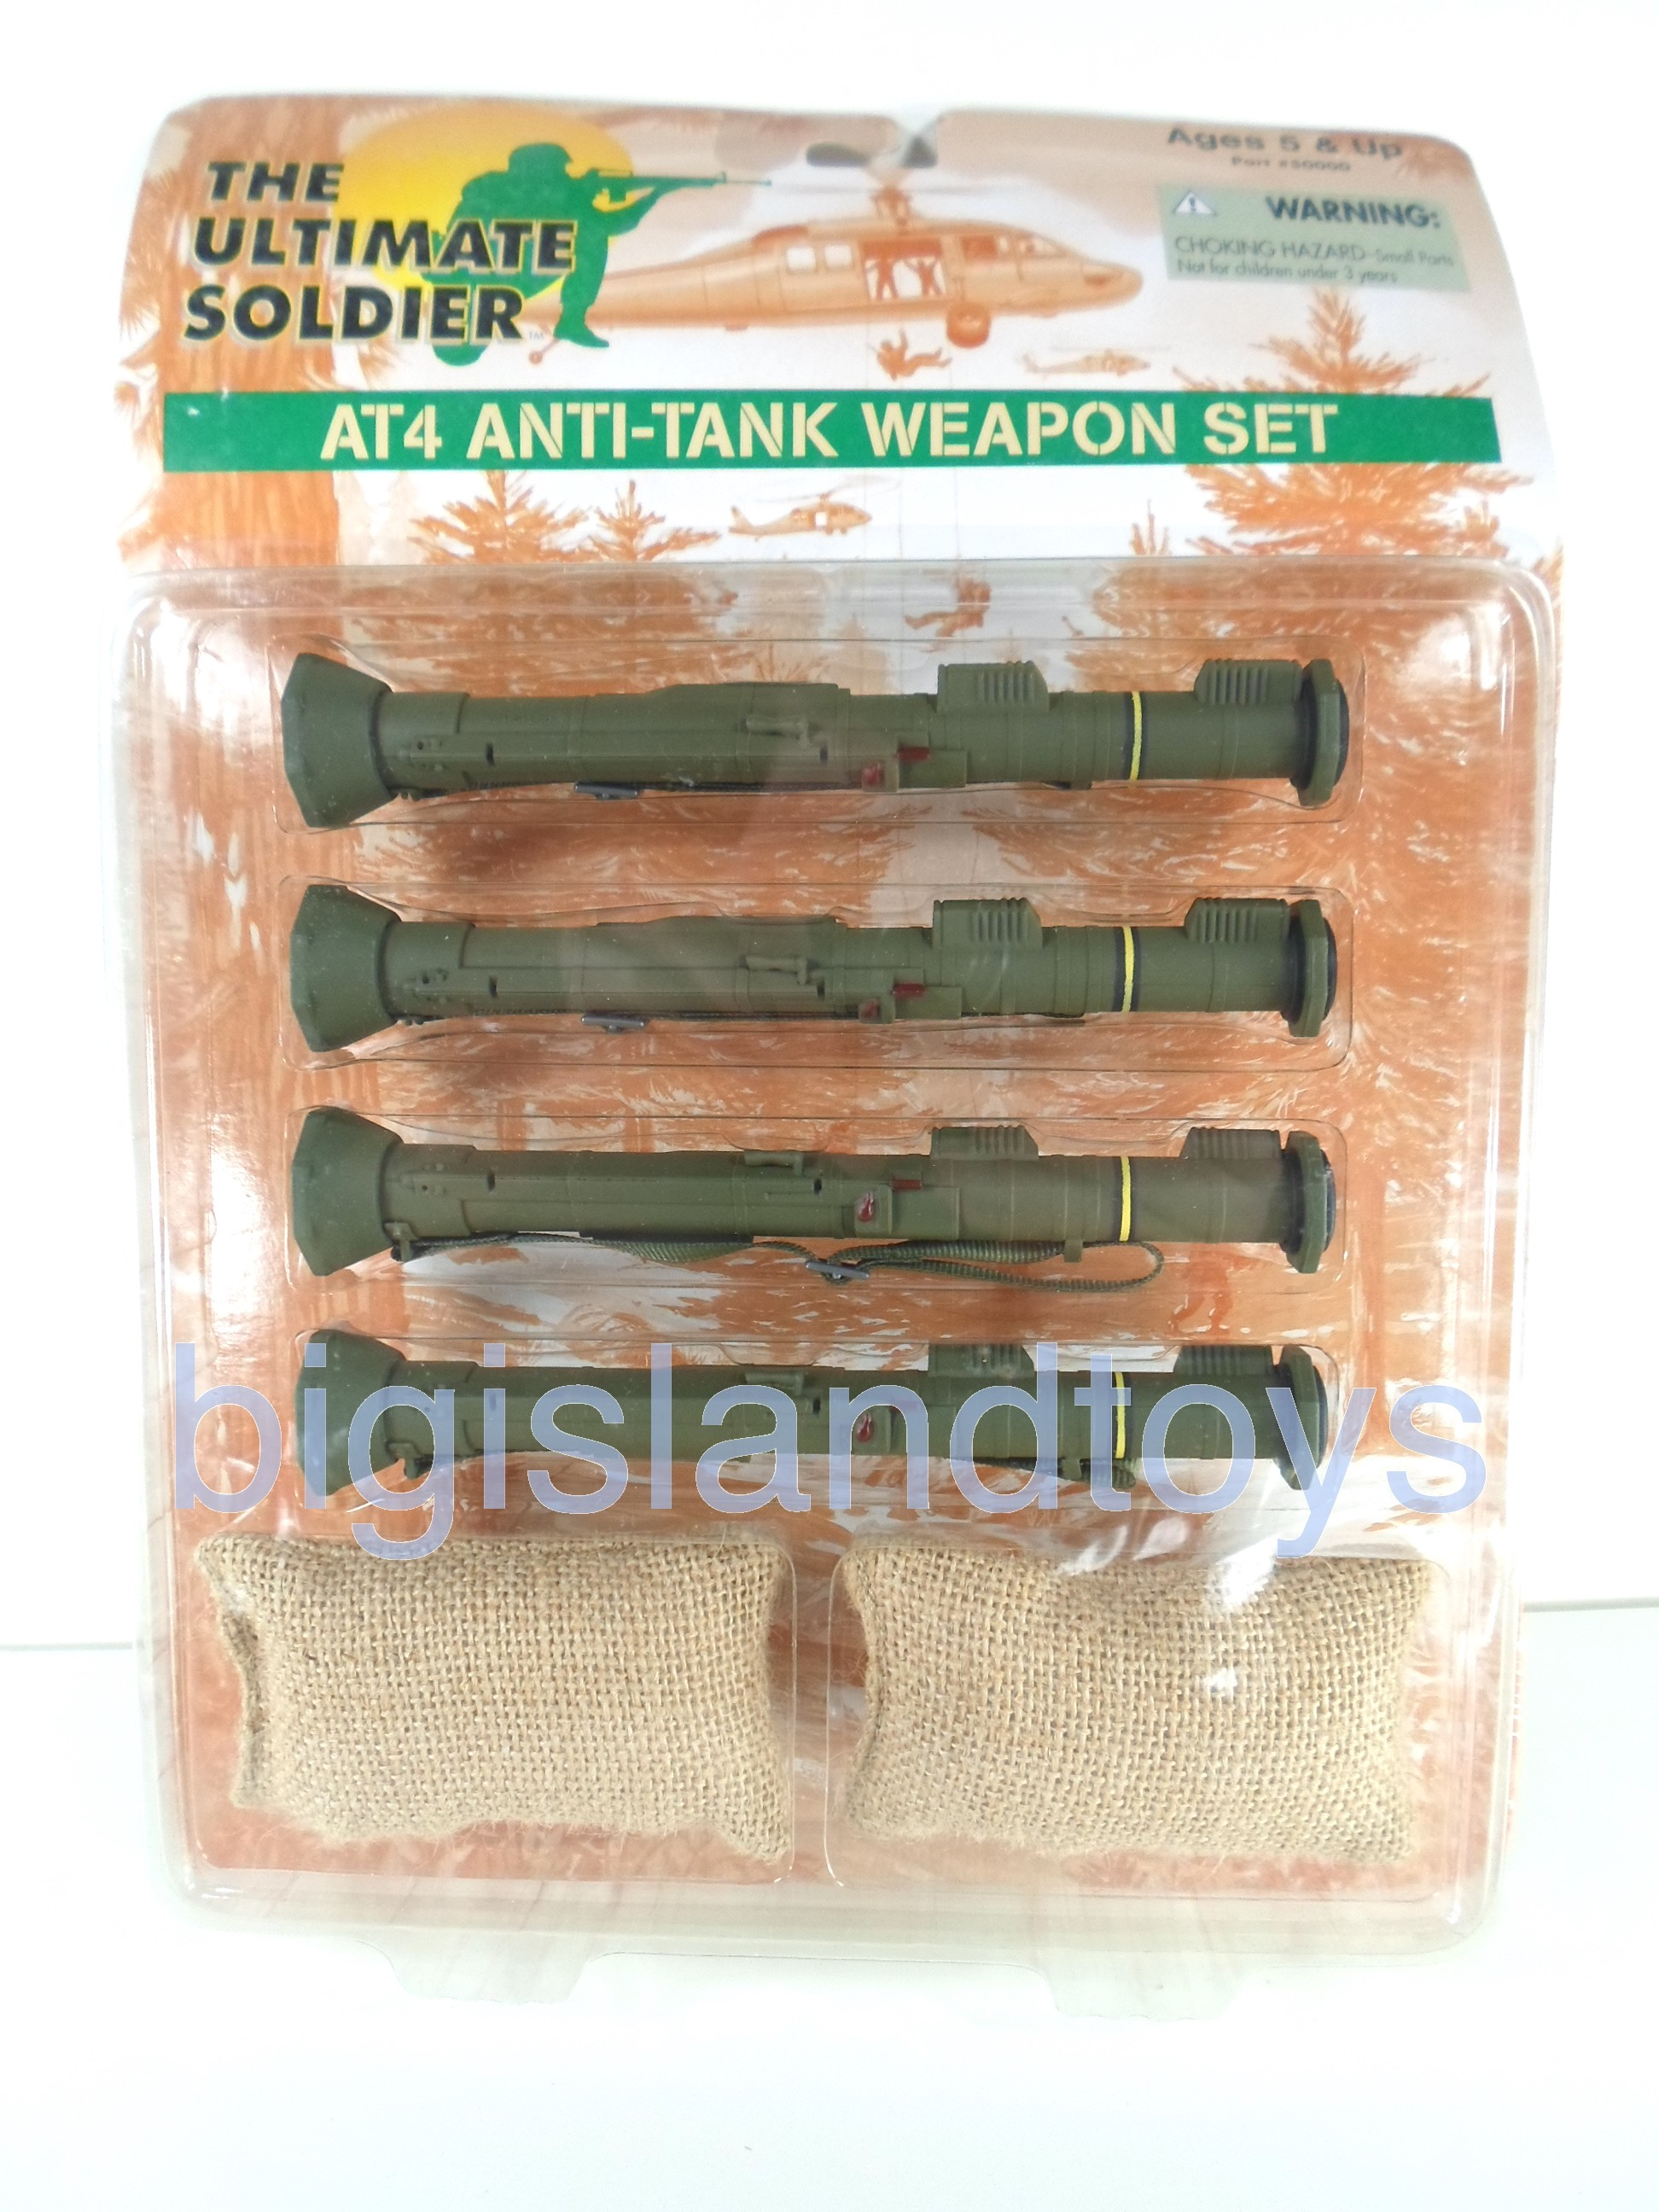 The Ultimate Soldier     AT4 Anti-Tank Weapon Set